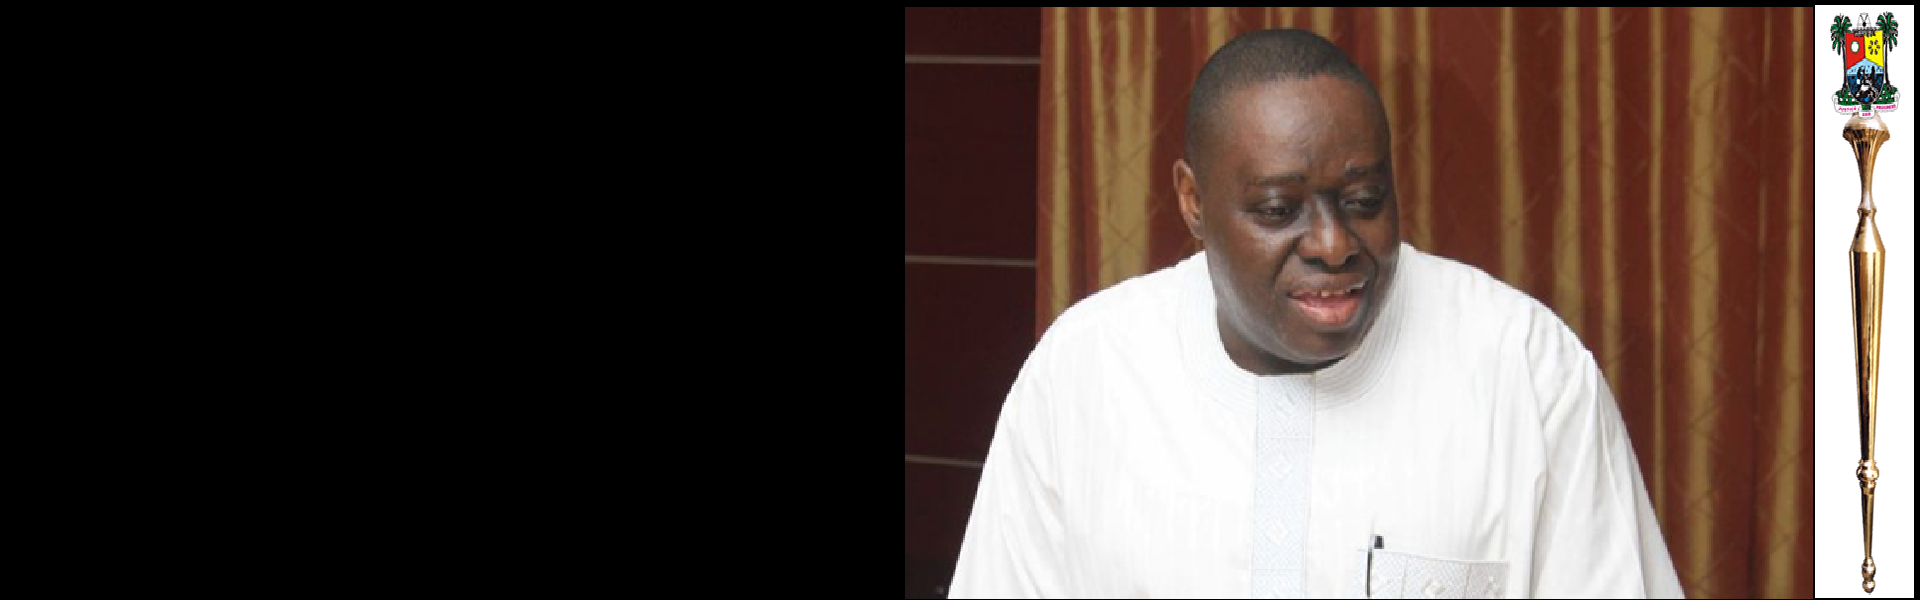 Wale Aboderin's Demise: Lagos Speaker Condoles With Family, Punch; Says Nigeria Will Miss His Versatility, Resourcefulness